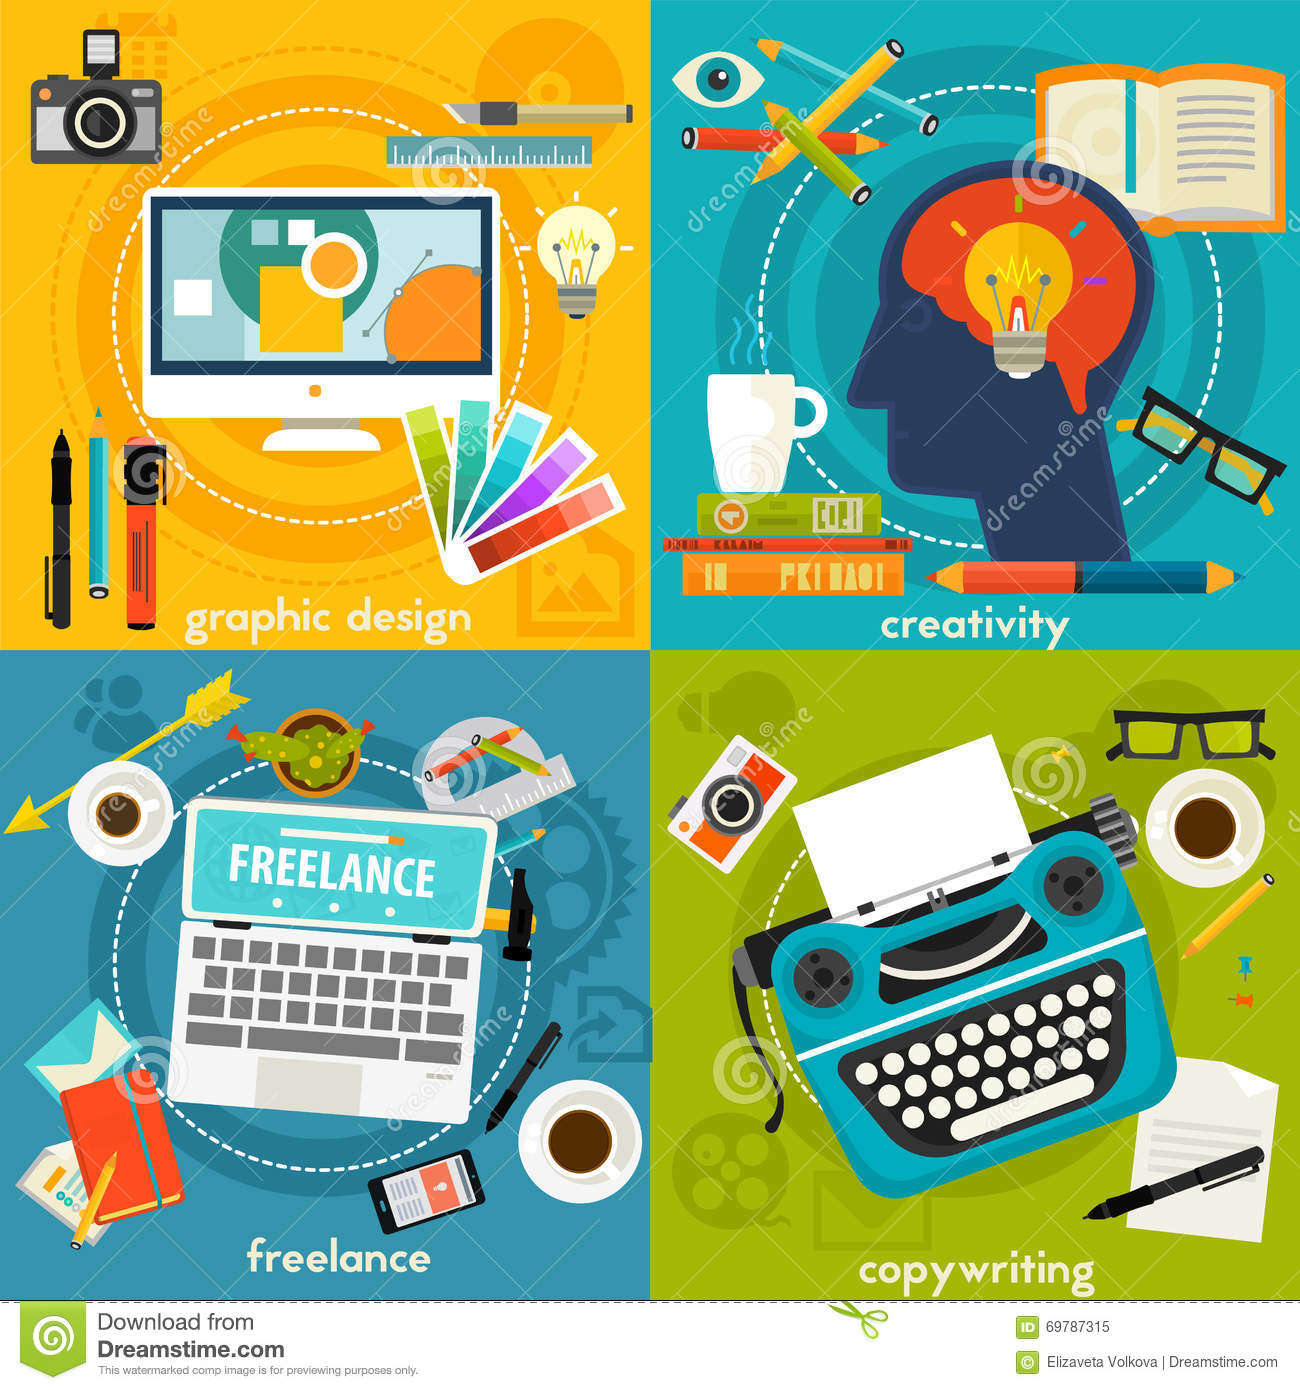 Graphic Deign Copywriting Creativity And Freelance Concept Banners Stock Vector Image 69787315